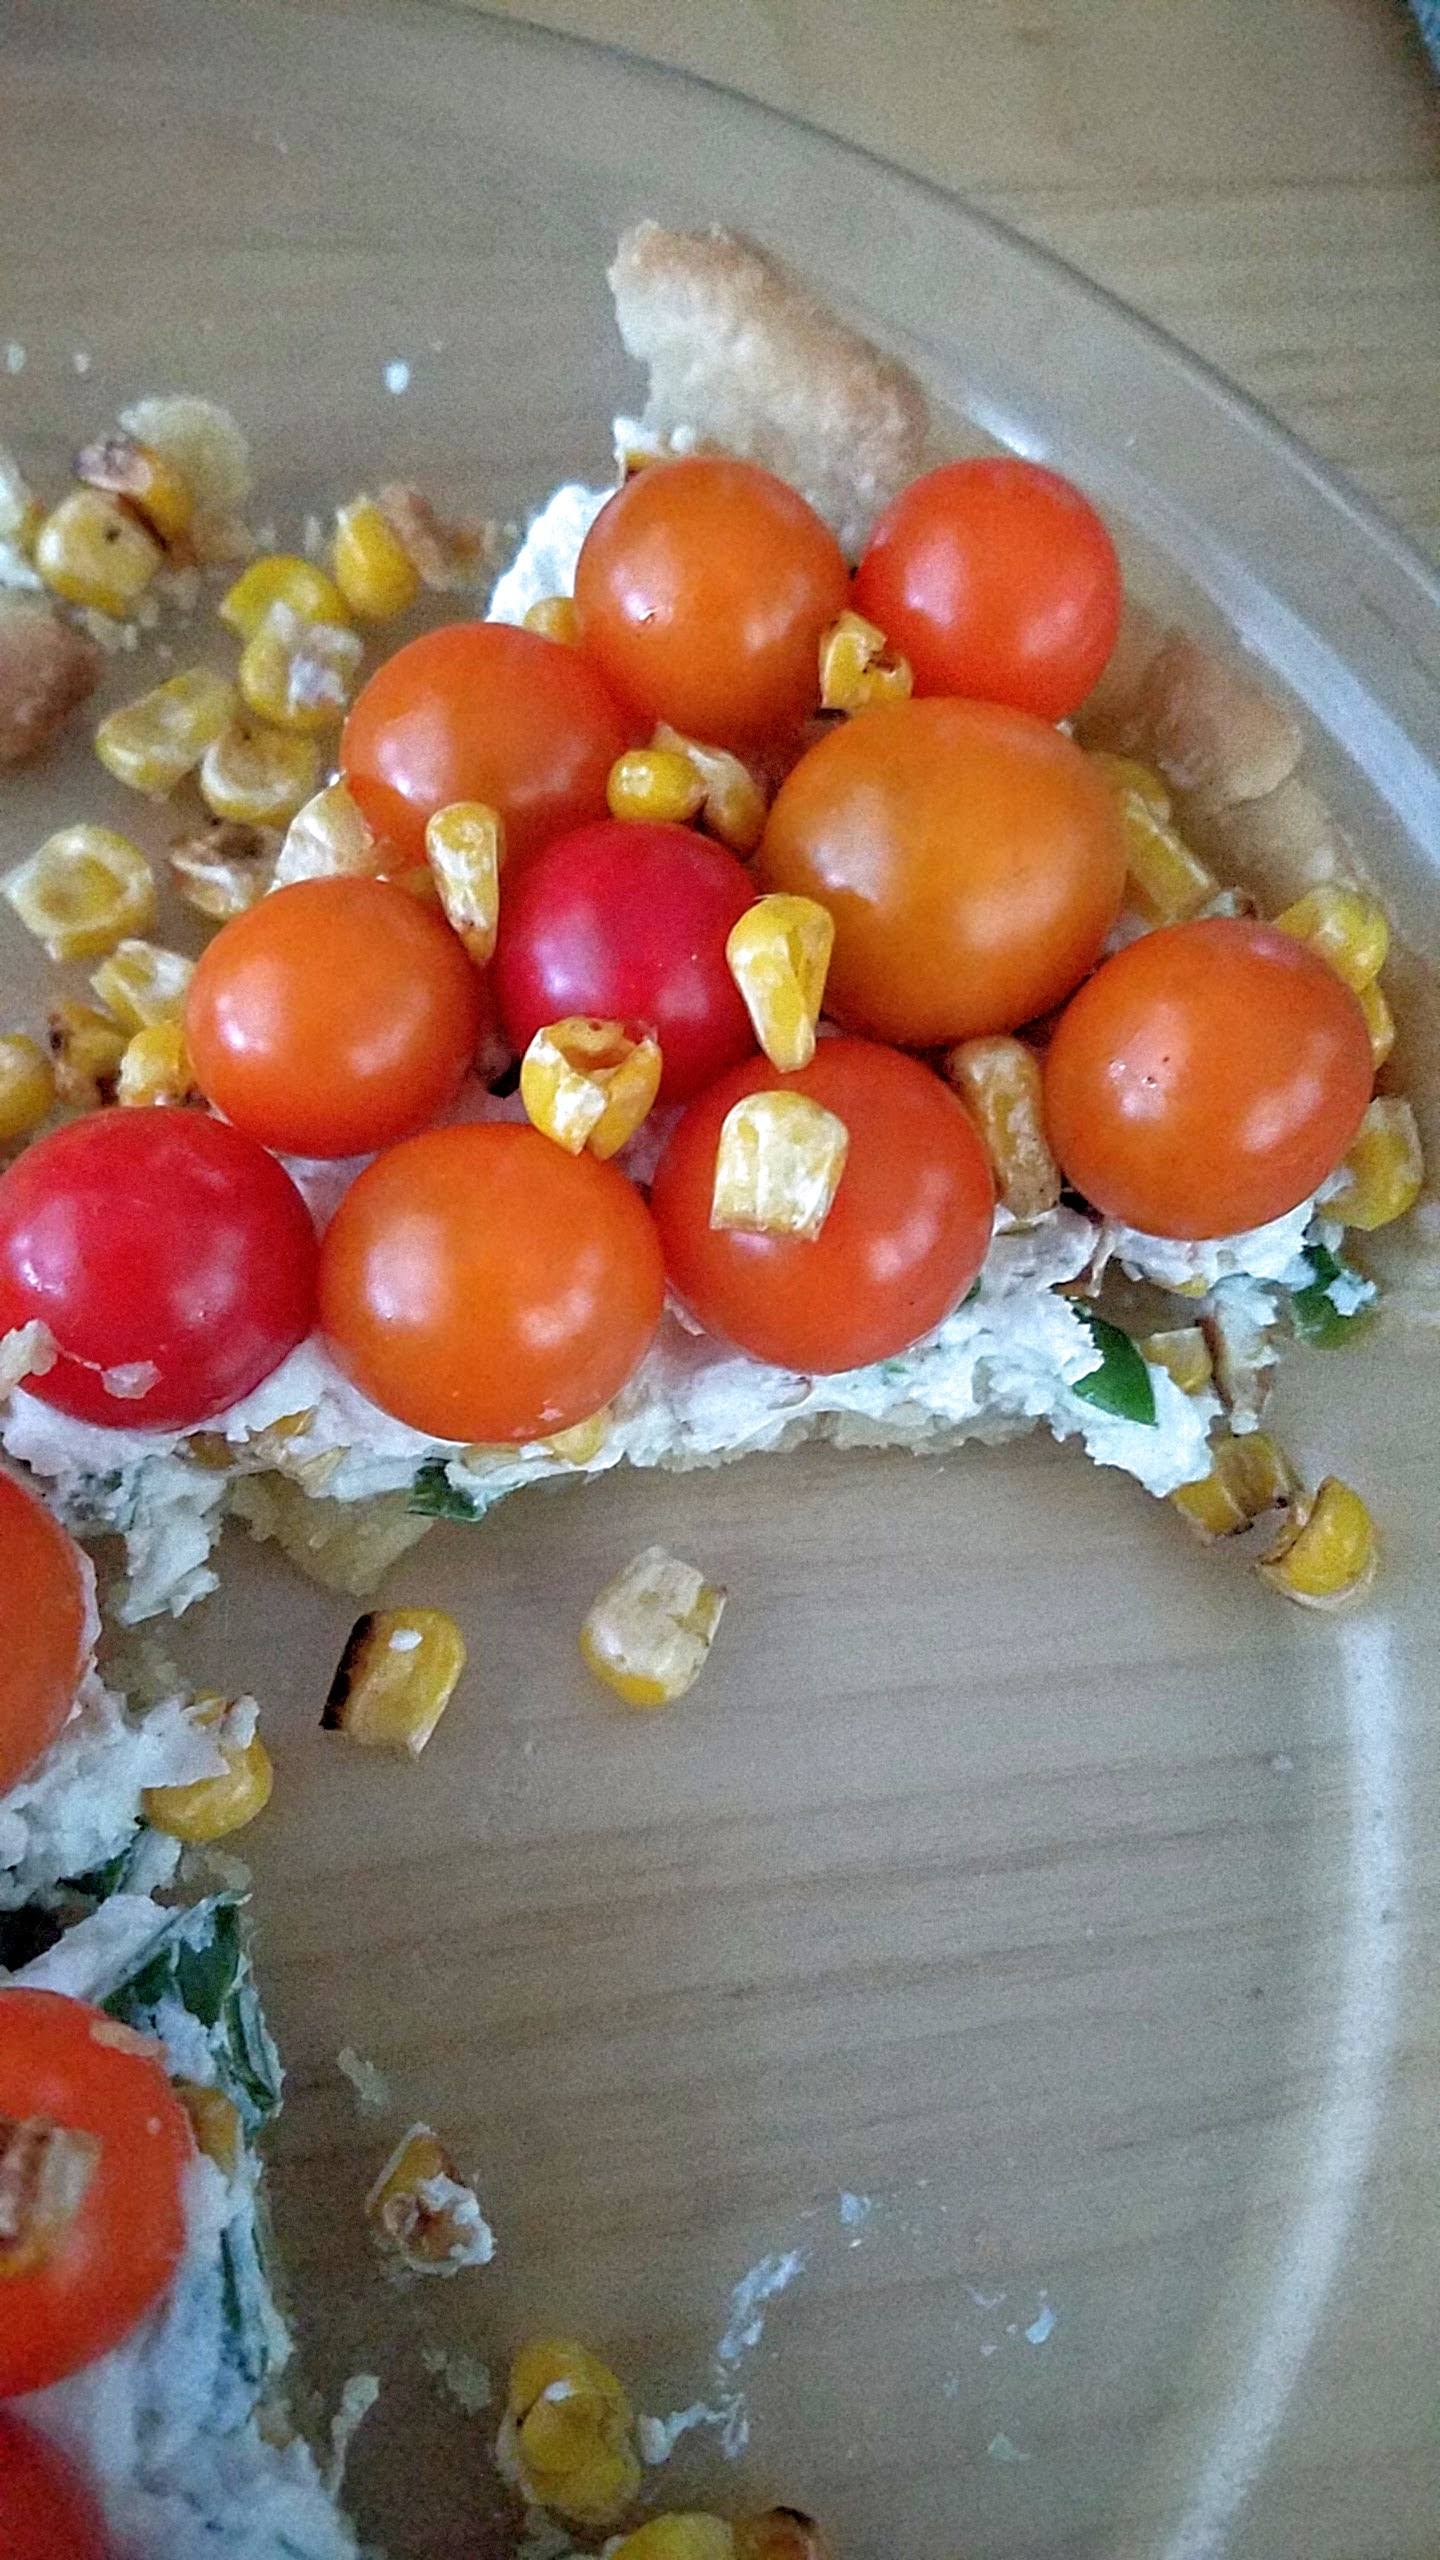 Tomato Pie Recipe with Fresh Cheeses and Uncooked Cherry Tomatoes and (optionally) seared corn to really celebrate the flavors of freshness